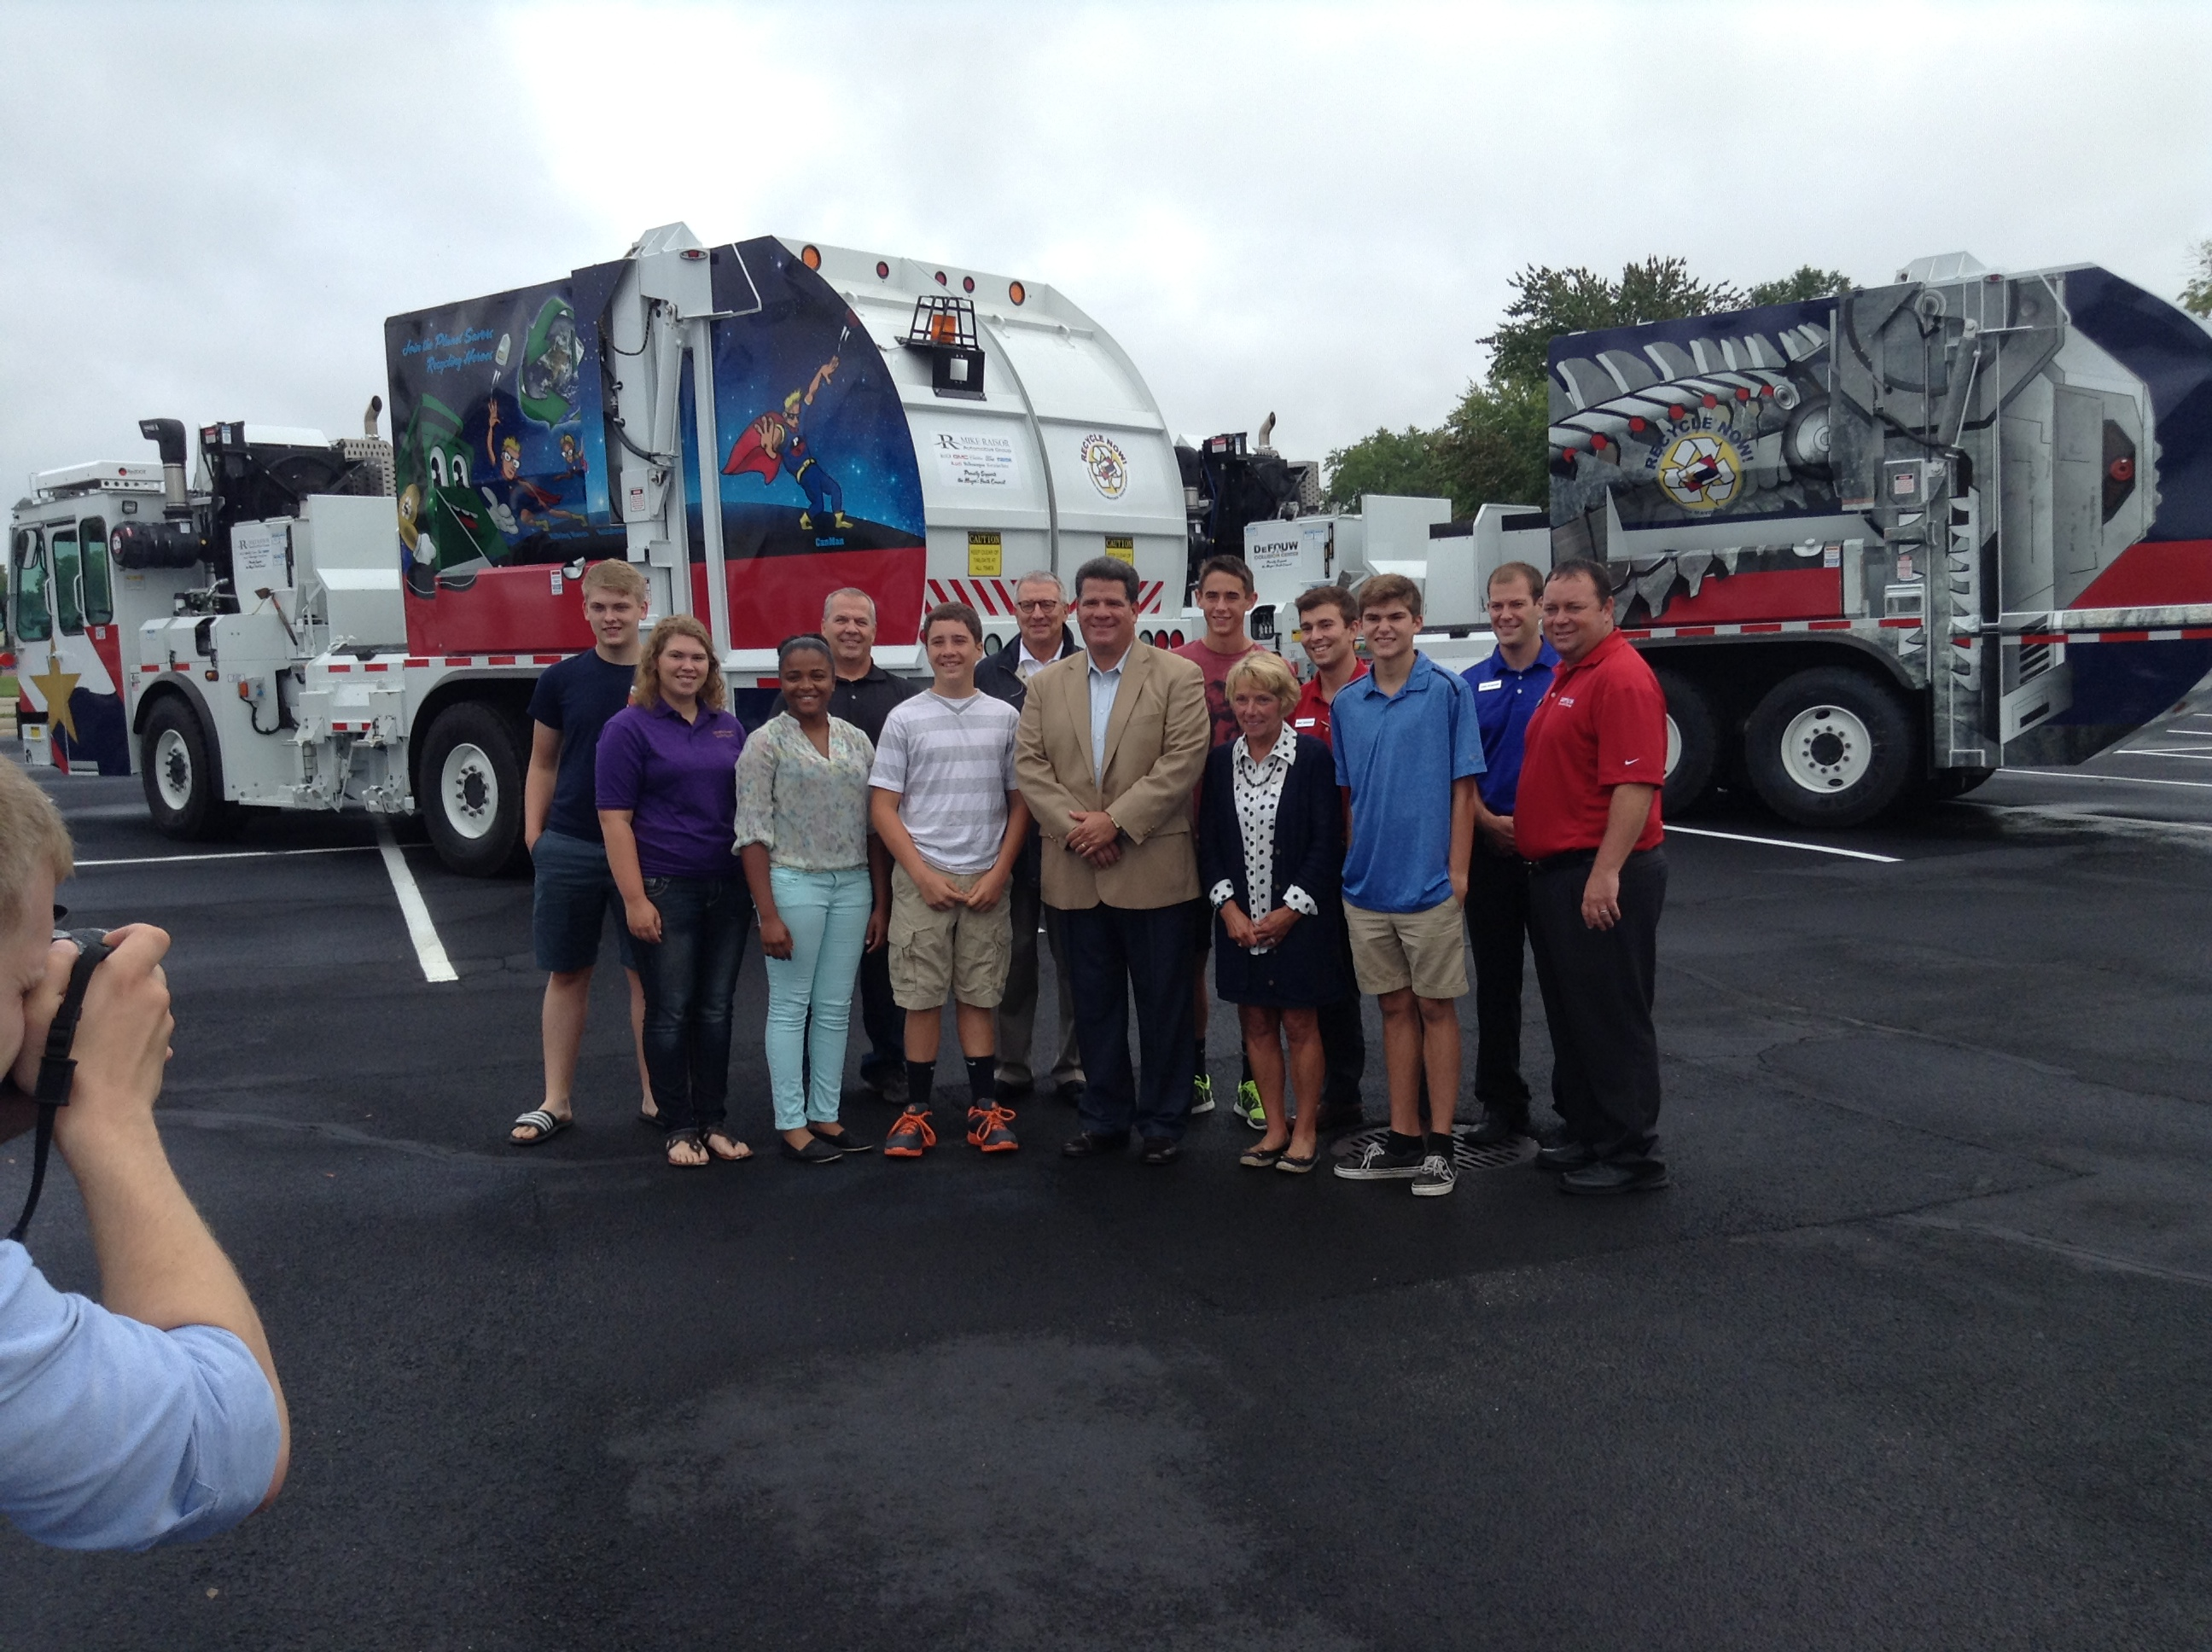 A group of people standing in front of brand new trash trucks